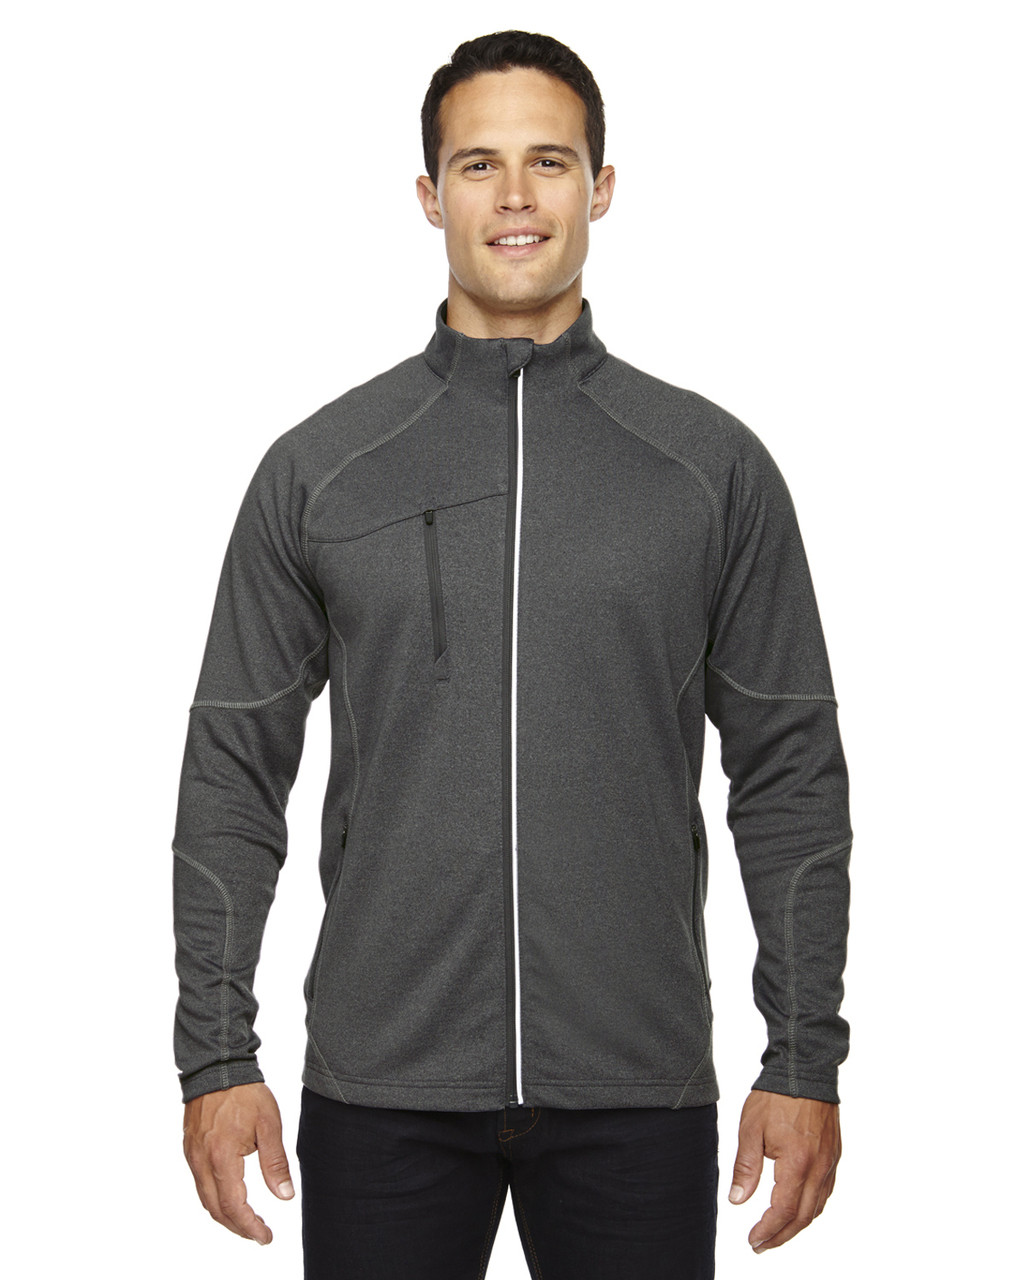 Carbon Heath - 88174 Ash City - North End Men's Gravity Performance Fleece Jacket | Blankclothing.ca